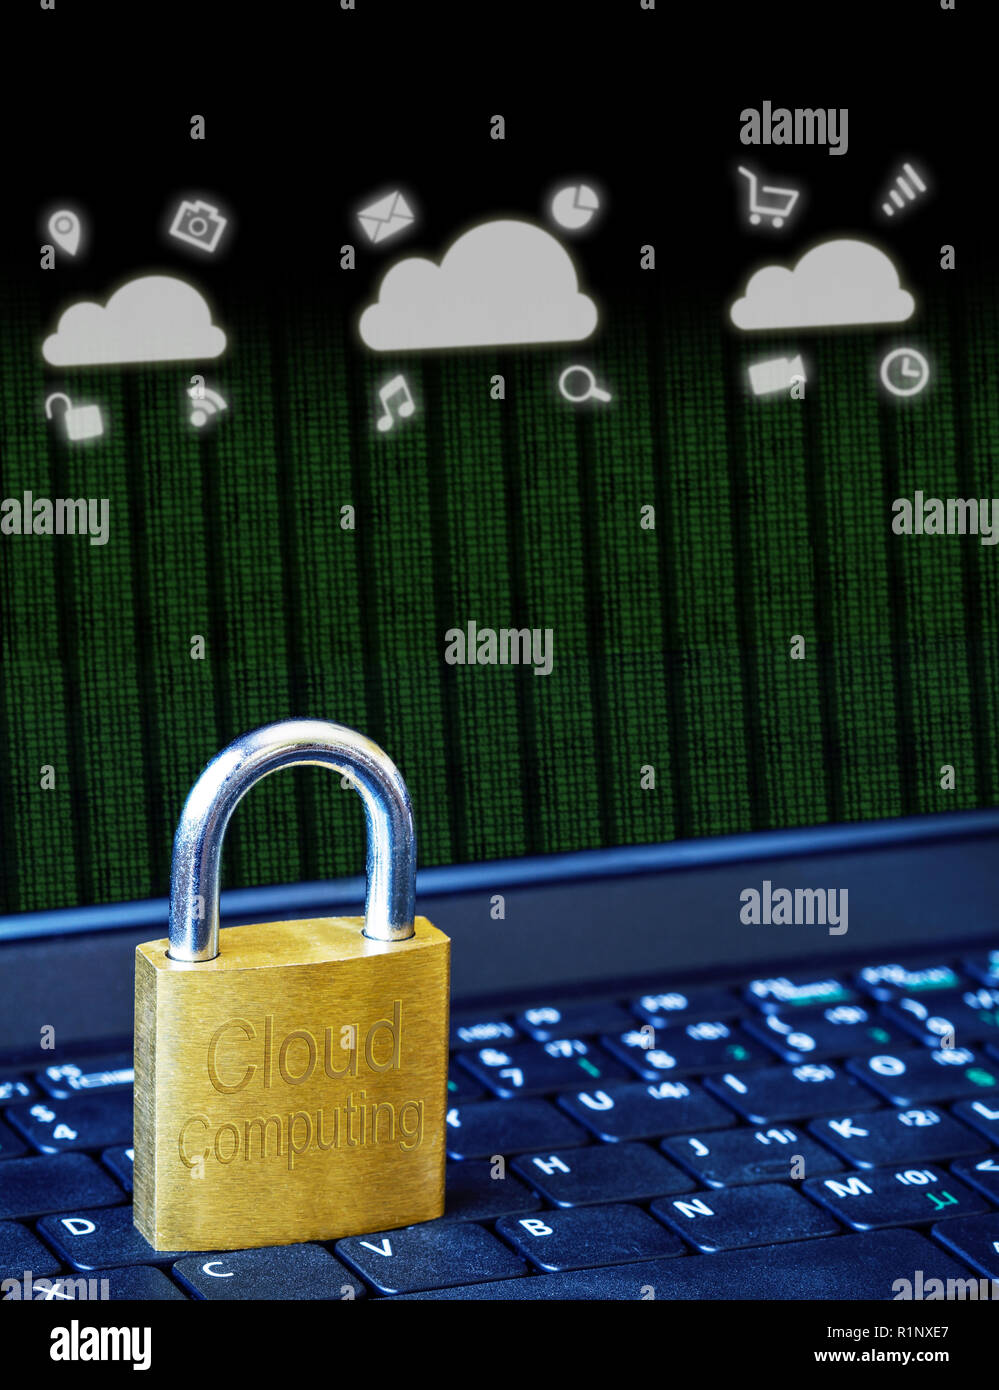 Golden padlock on computer laptop keyboard with Cloud Computing icons and binary data. Concept of Internet security, data privacy, cybercrime preventi Stock Photo